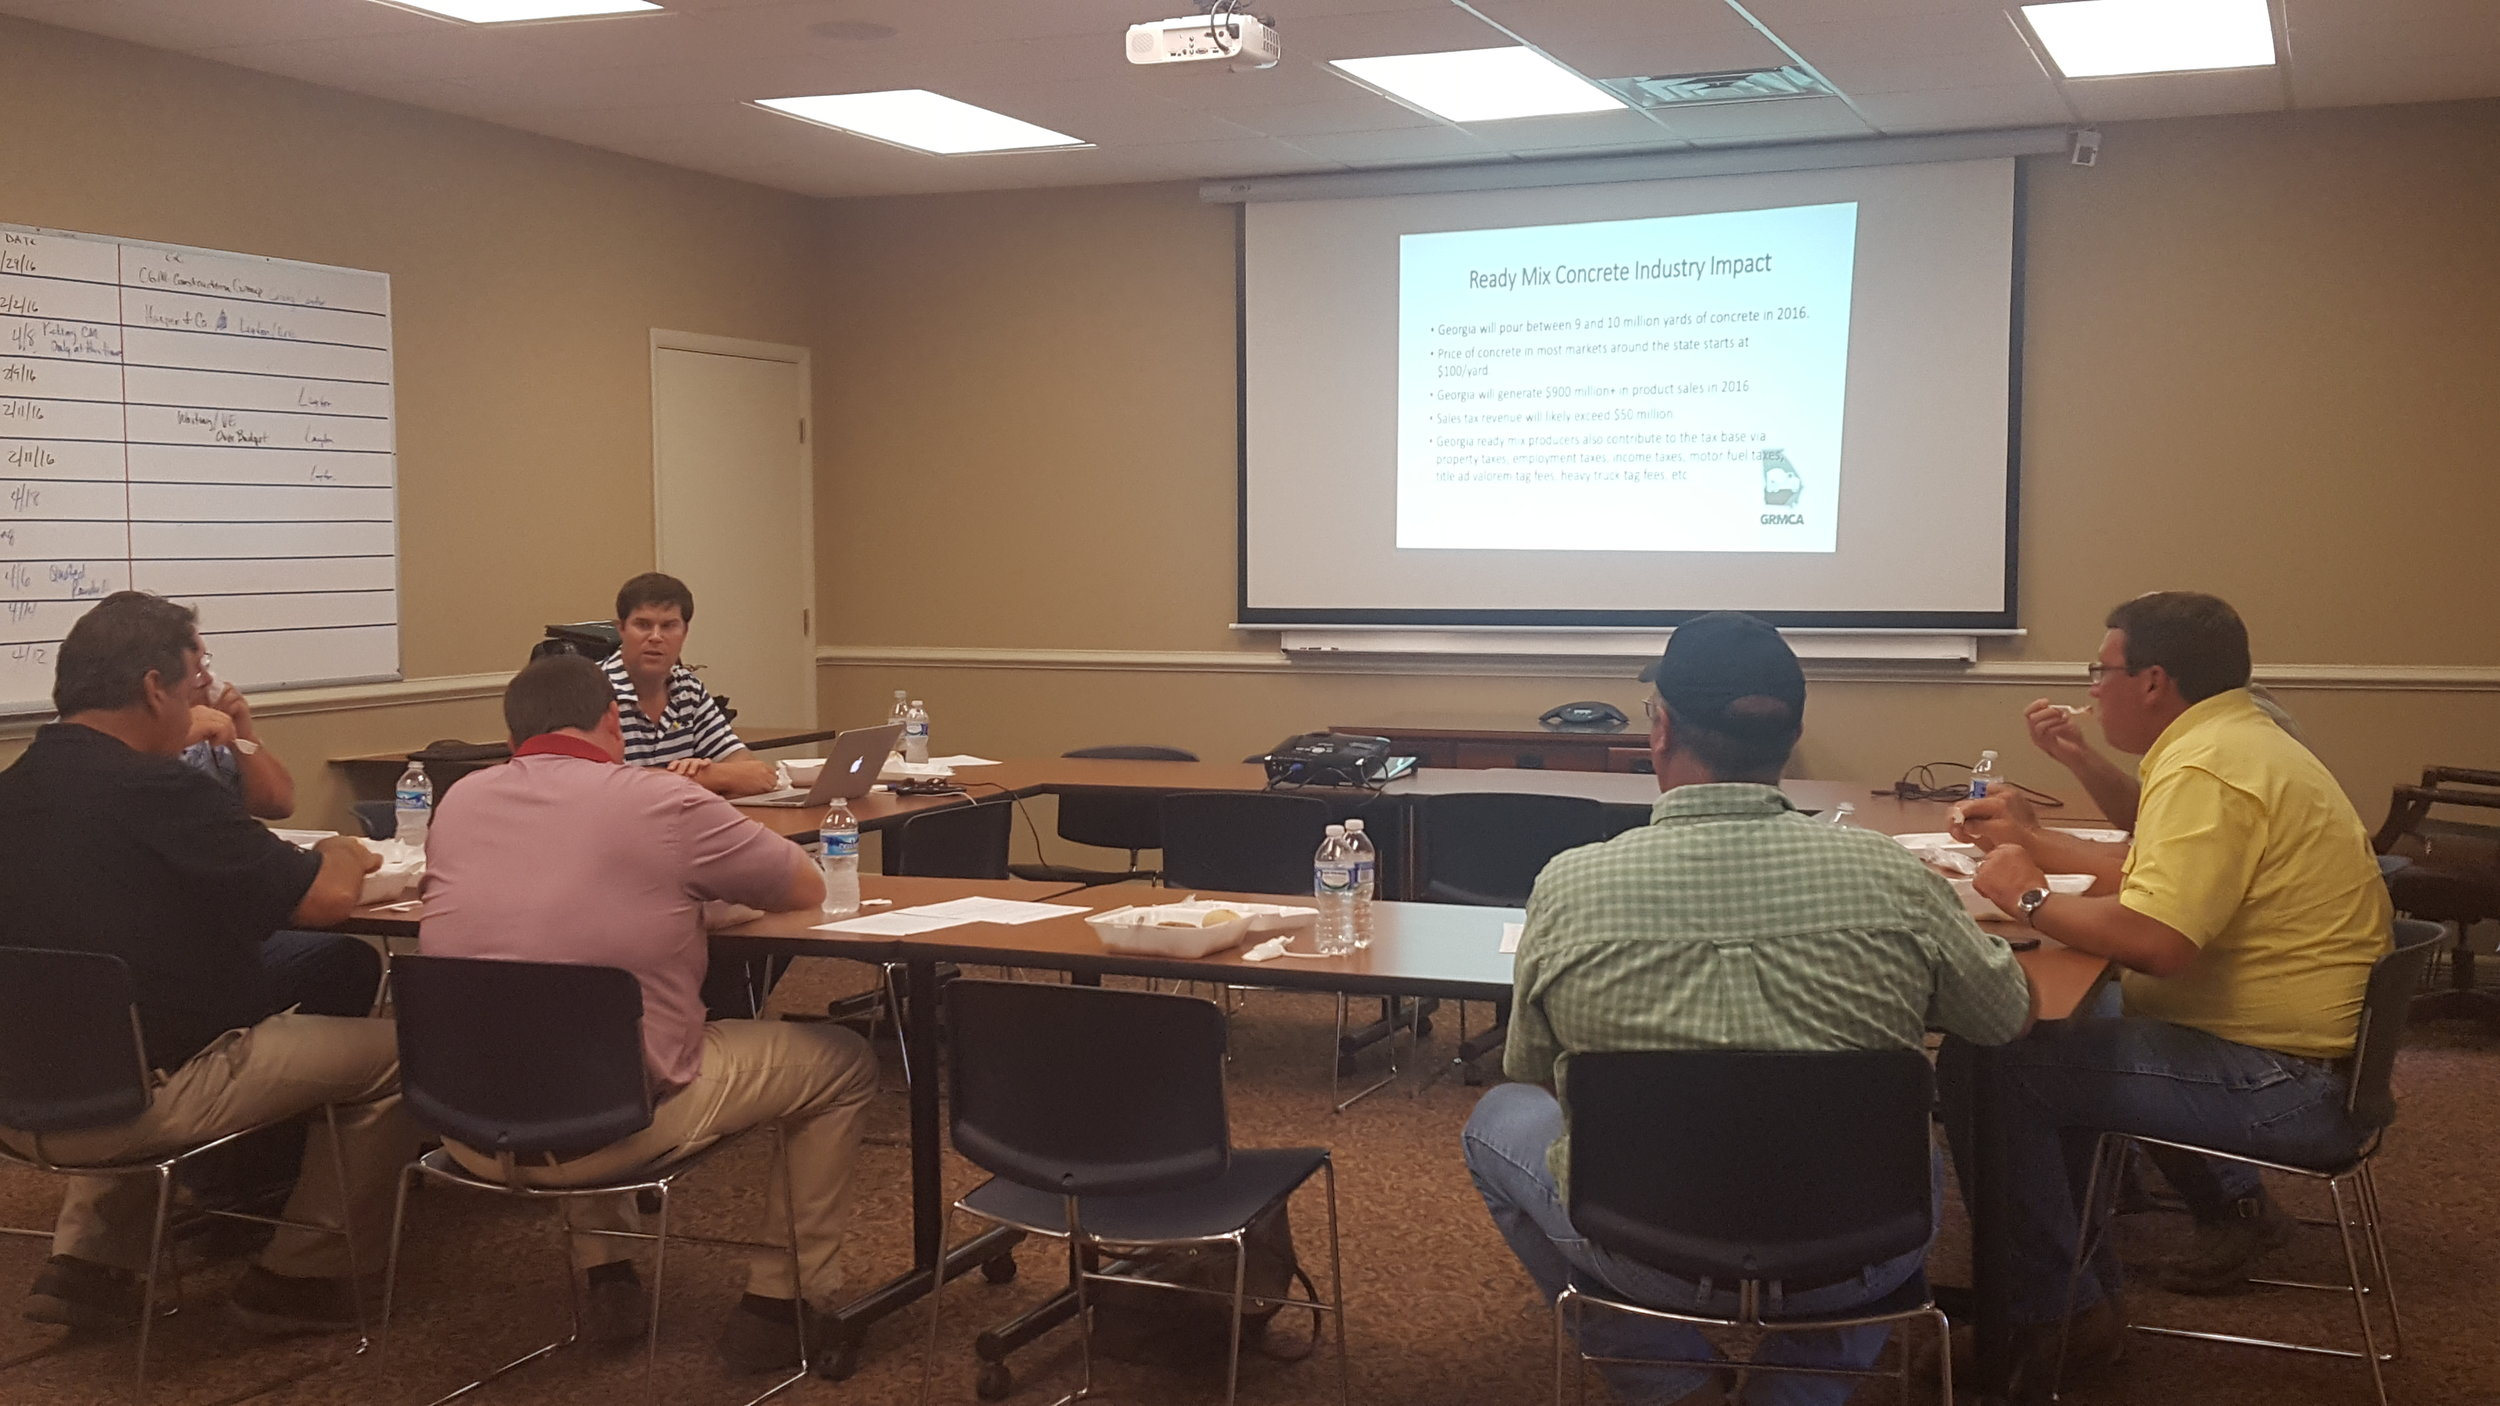 GRMCA Executive Director Jimmy Cotty gives a presentation on manufacturers' tax exemptions for the Ready Mix Industry.